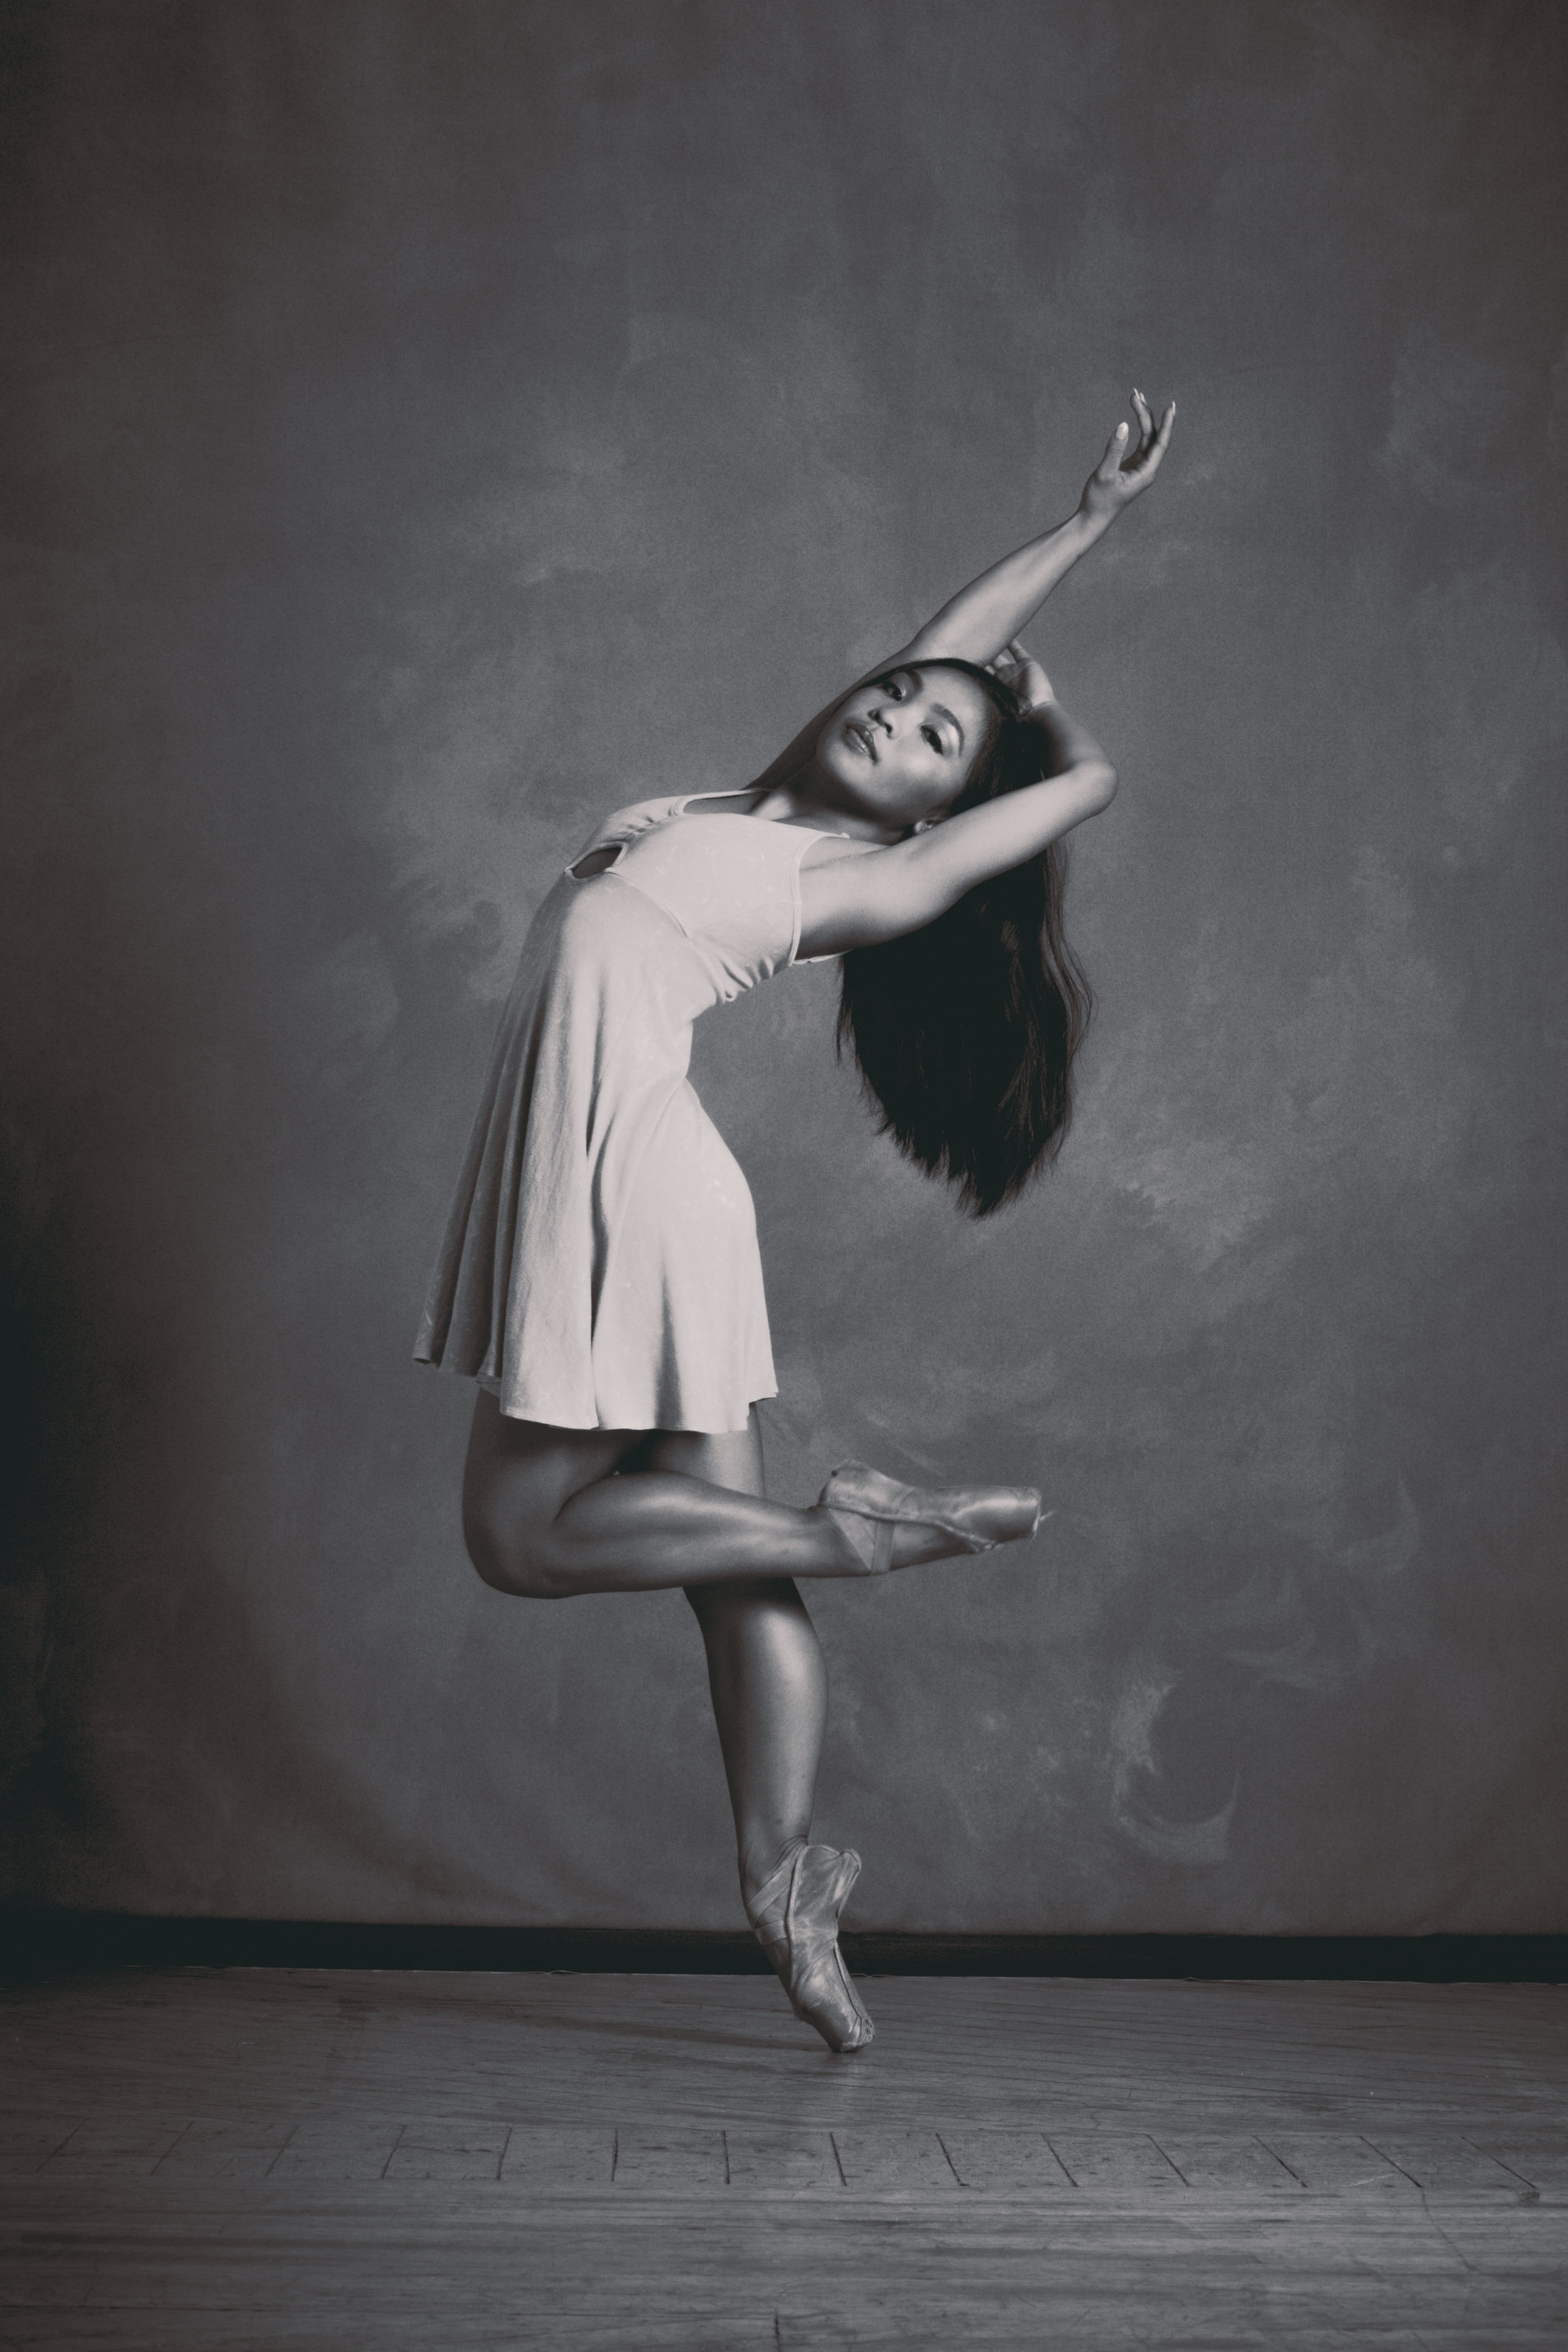 - Let us capture your dancers brand with beautiful imagery.